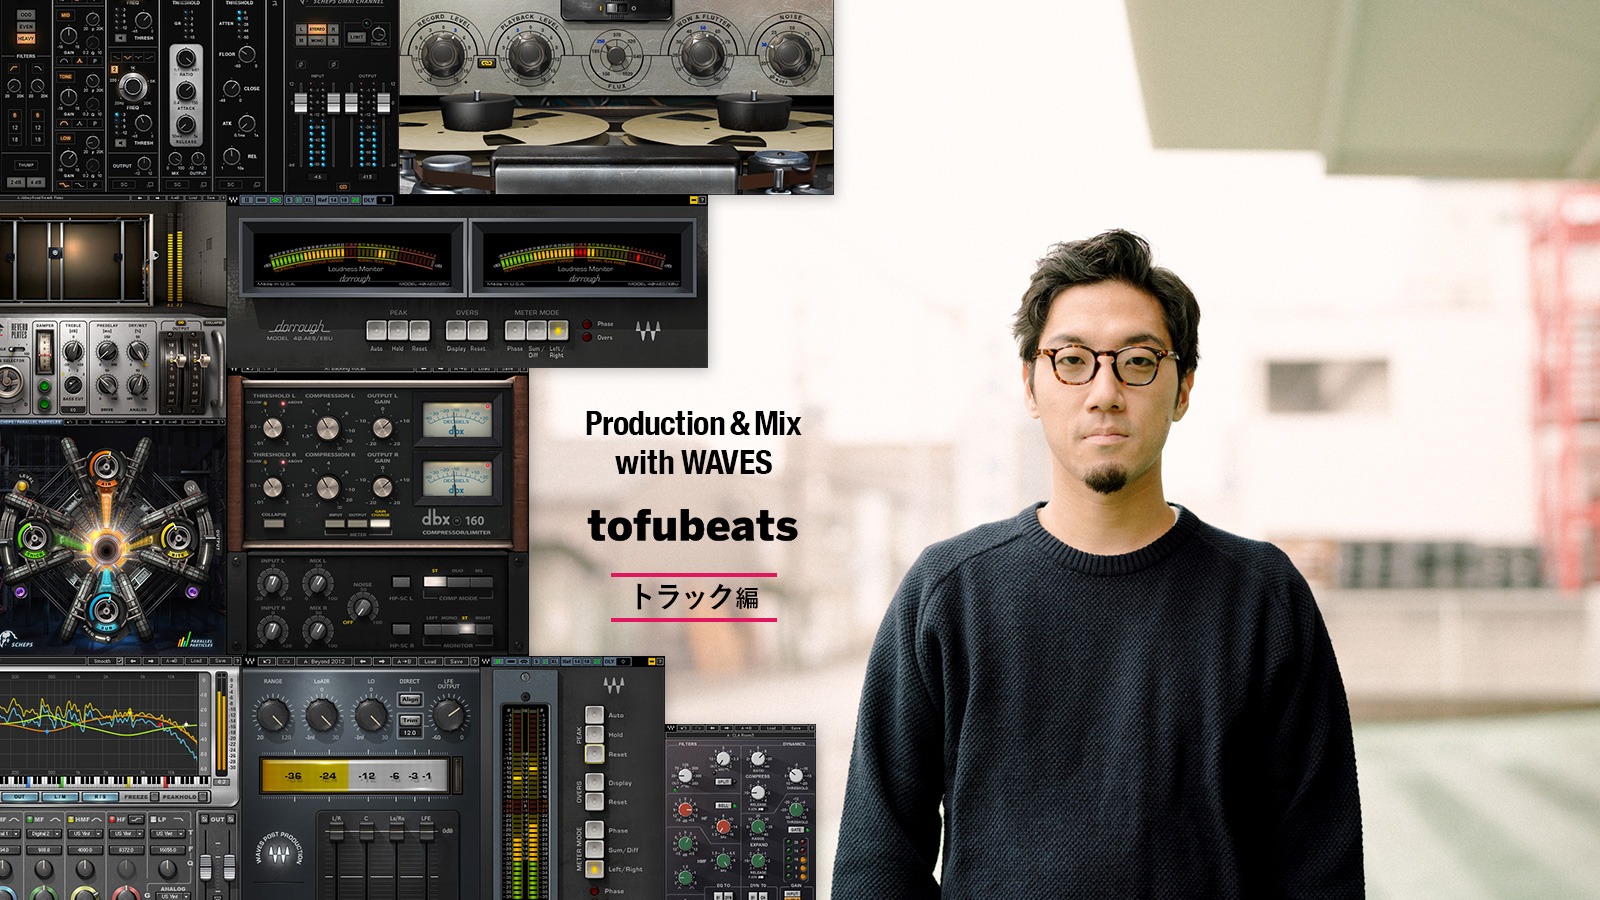 Production & Mix with WAVES – tofubeats #2 トラック編